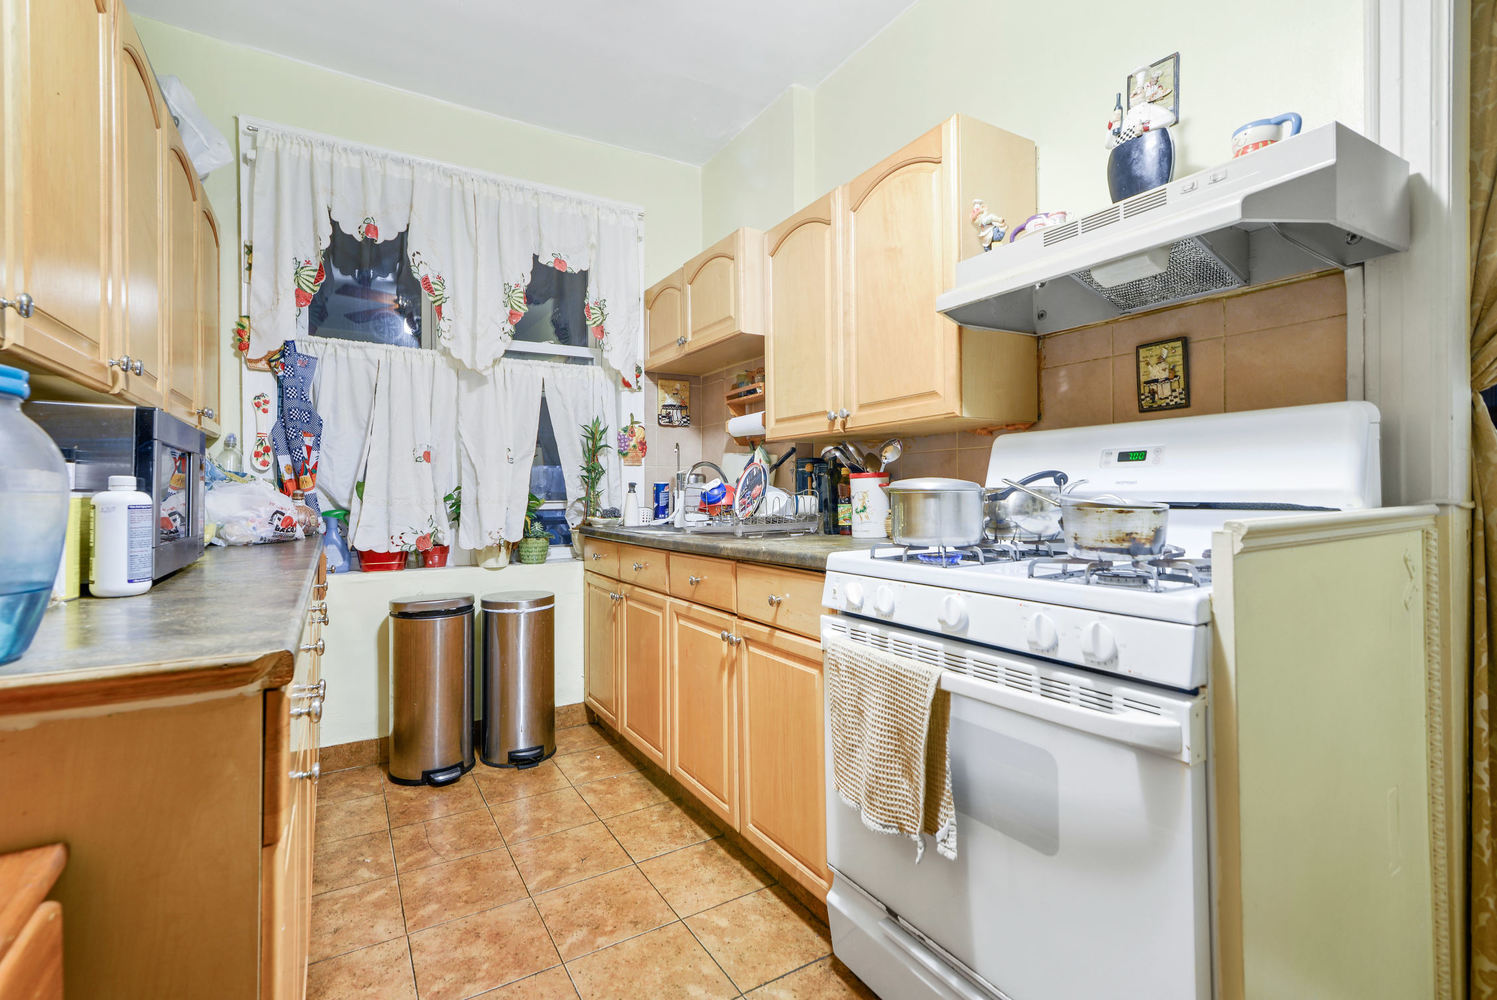 38-28 55th Street, Unit 2 Queens, NY 11377